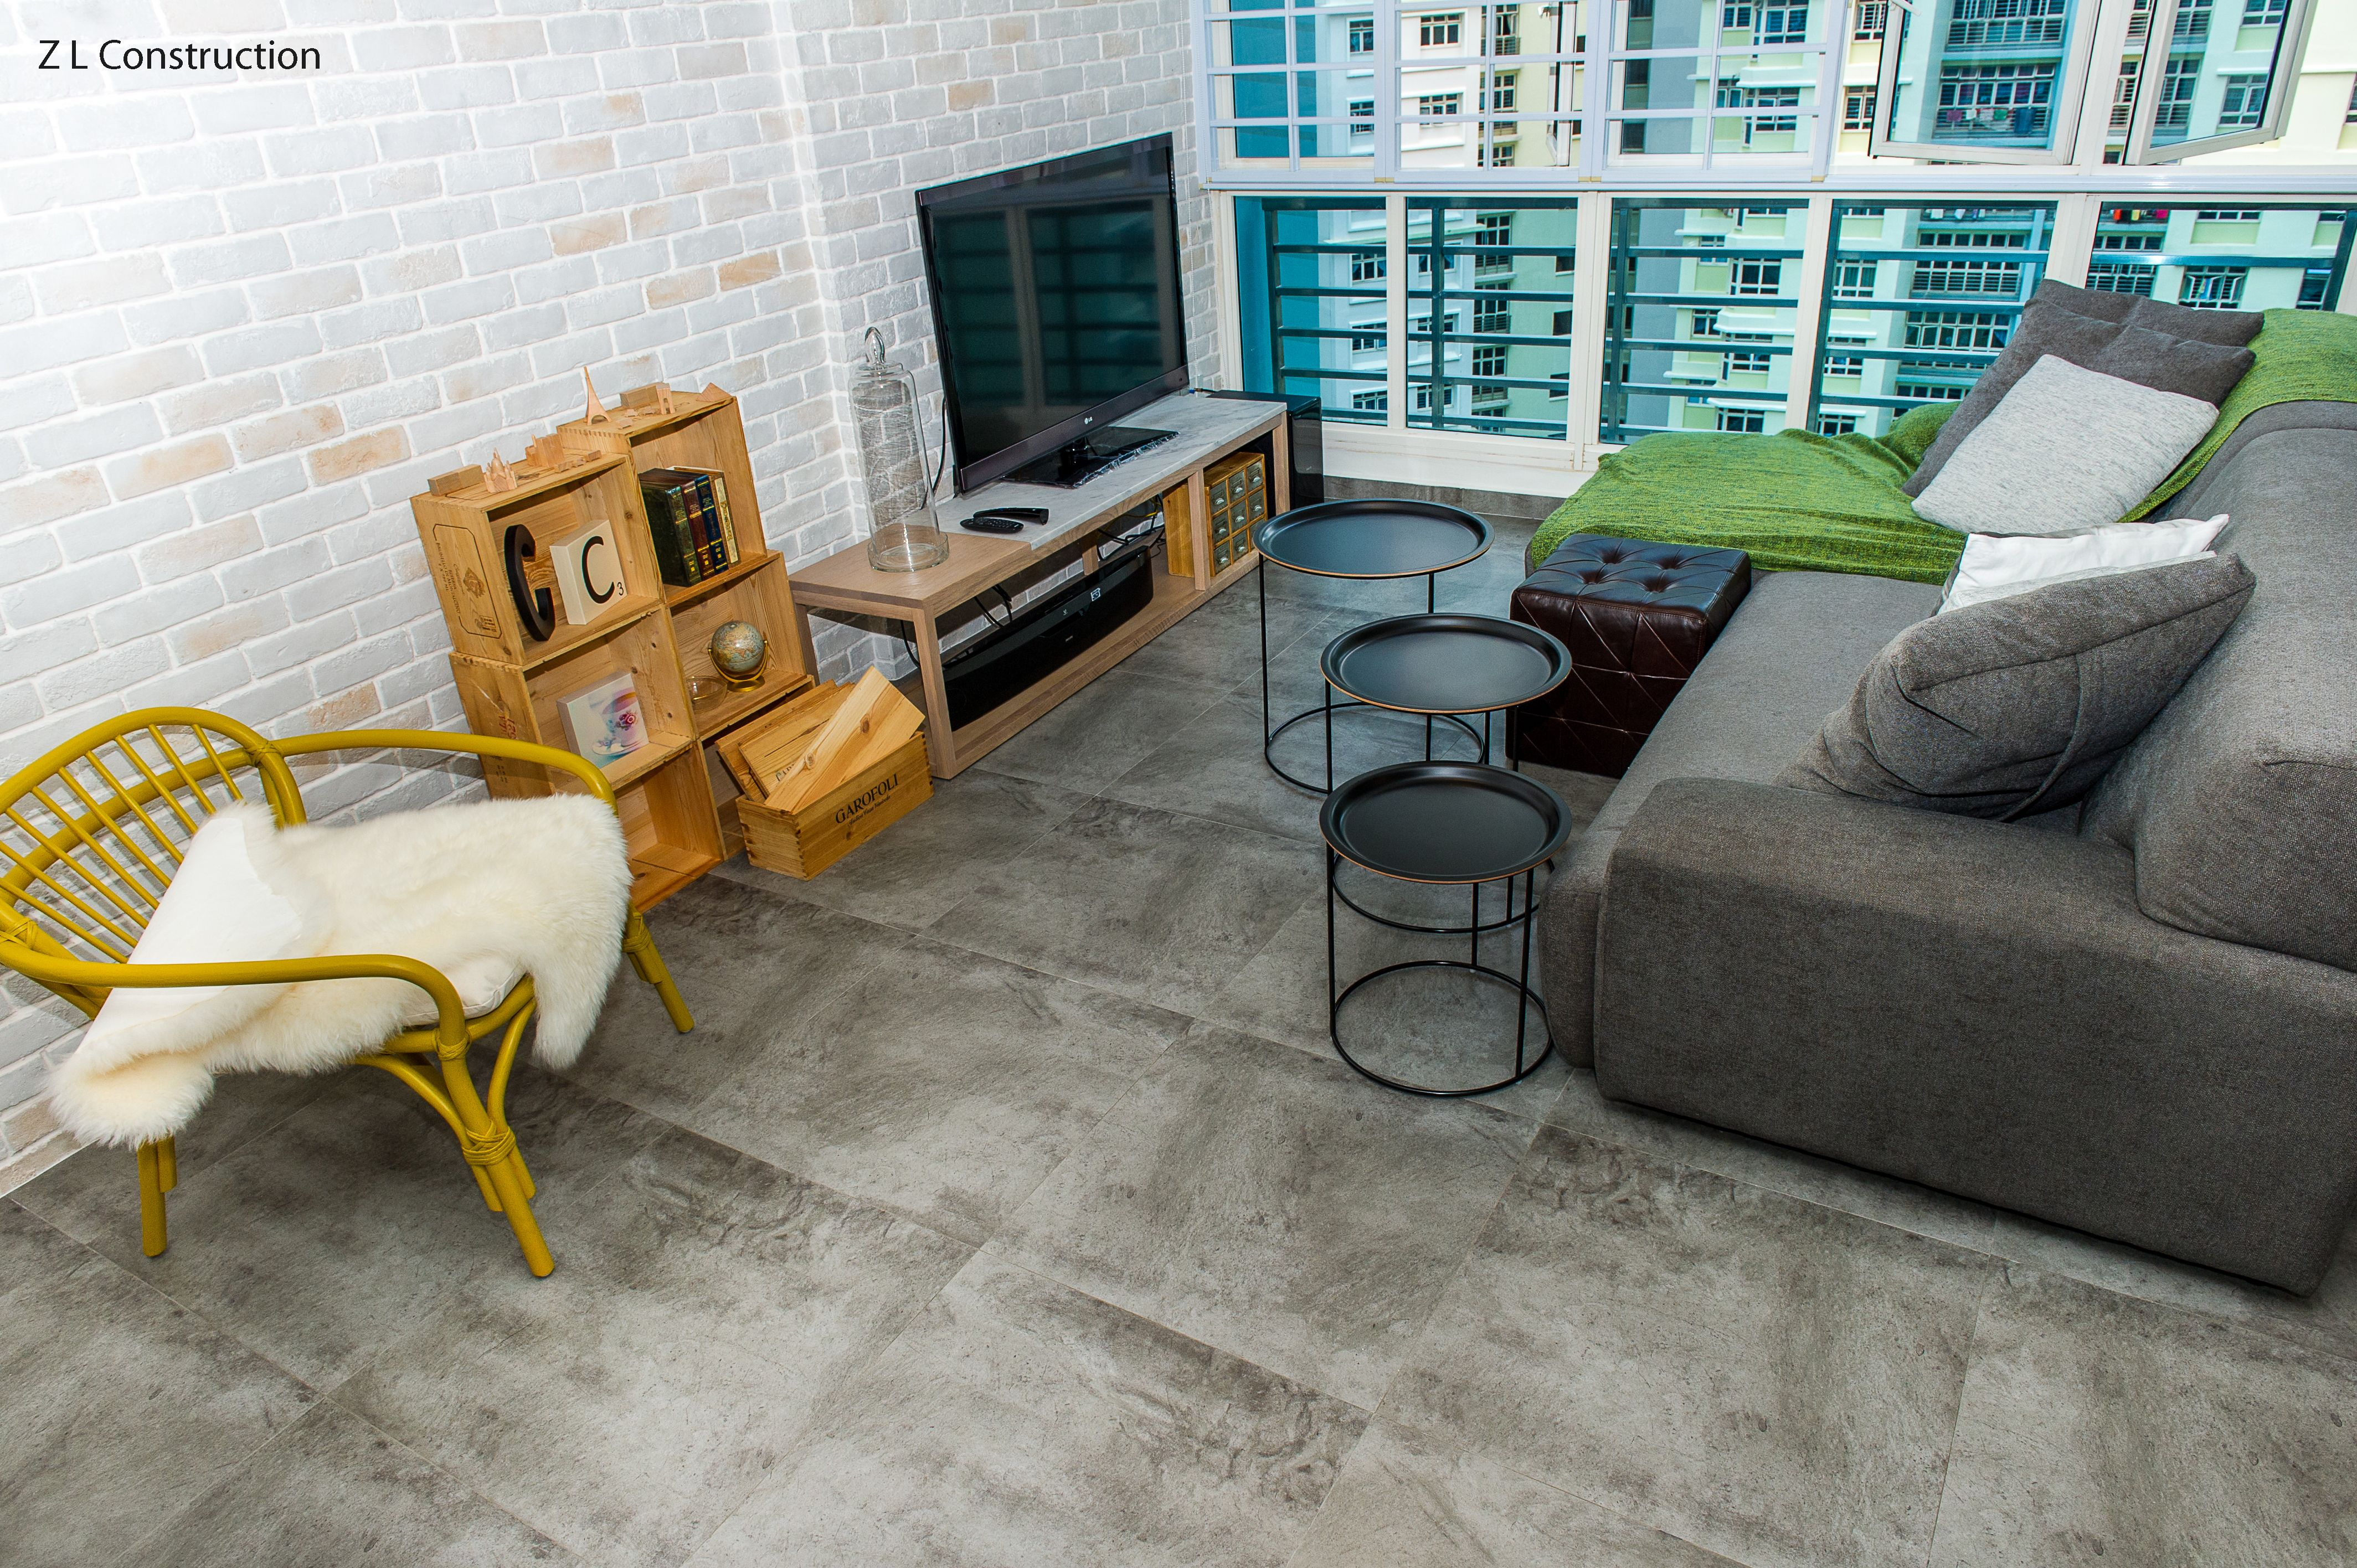 Z L Construction Singapore Cement Screed Like Floor Tiles